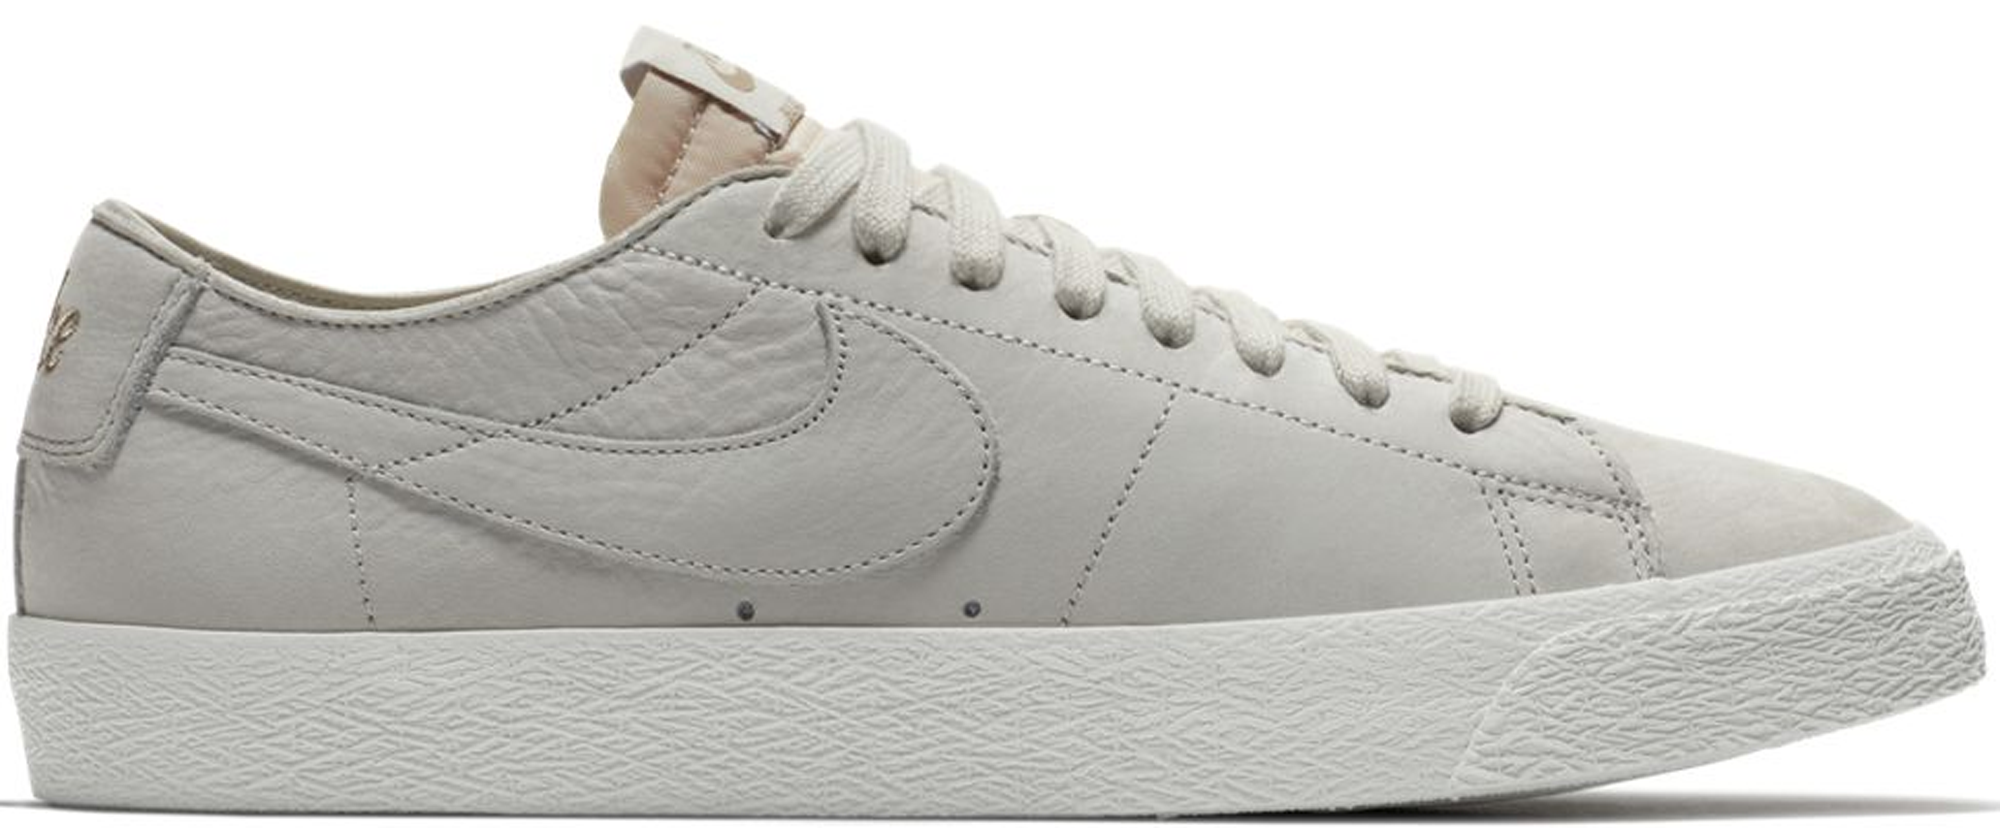 nike sb blazer low sale auto